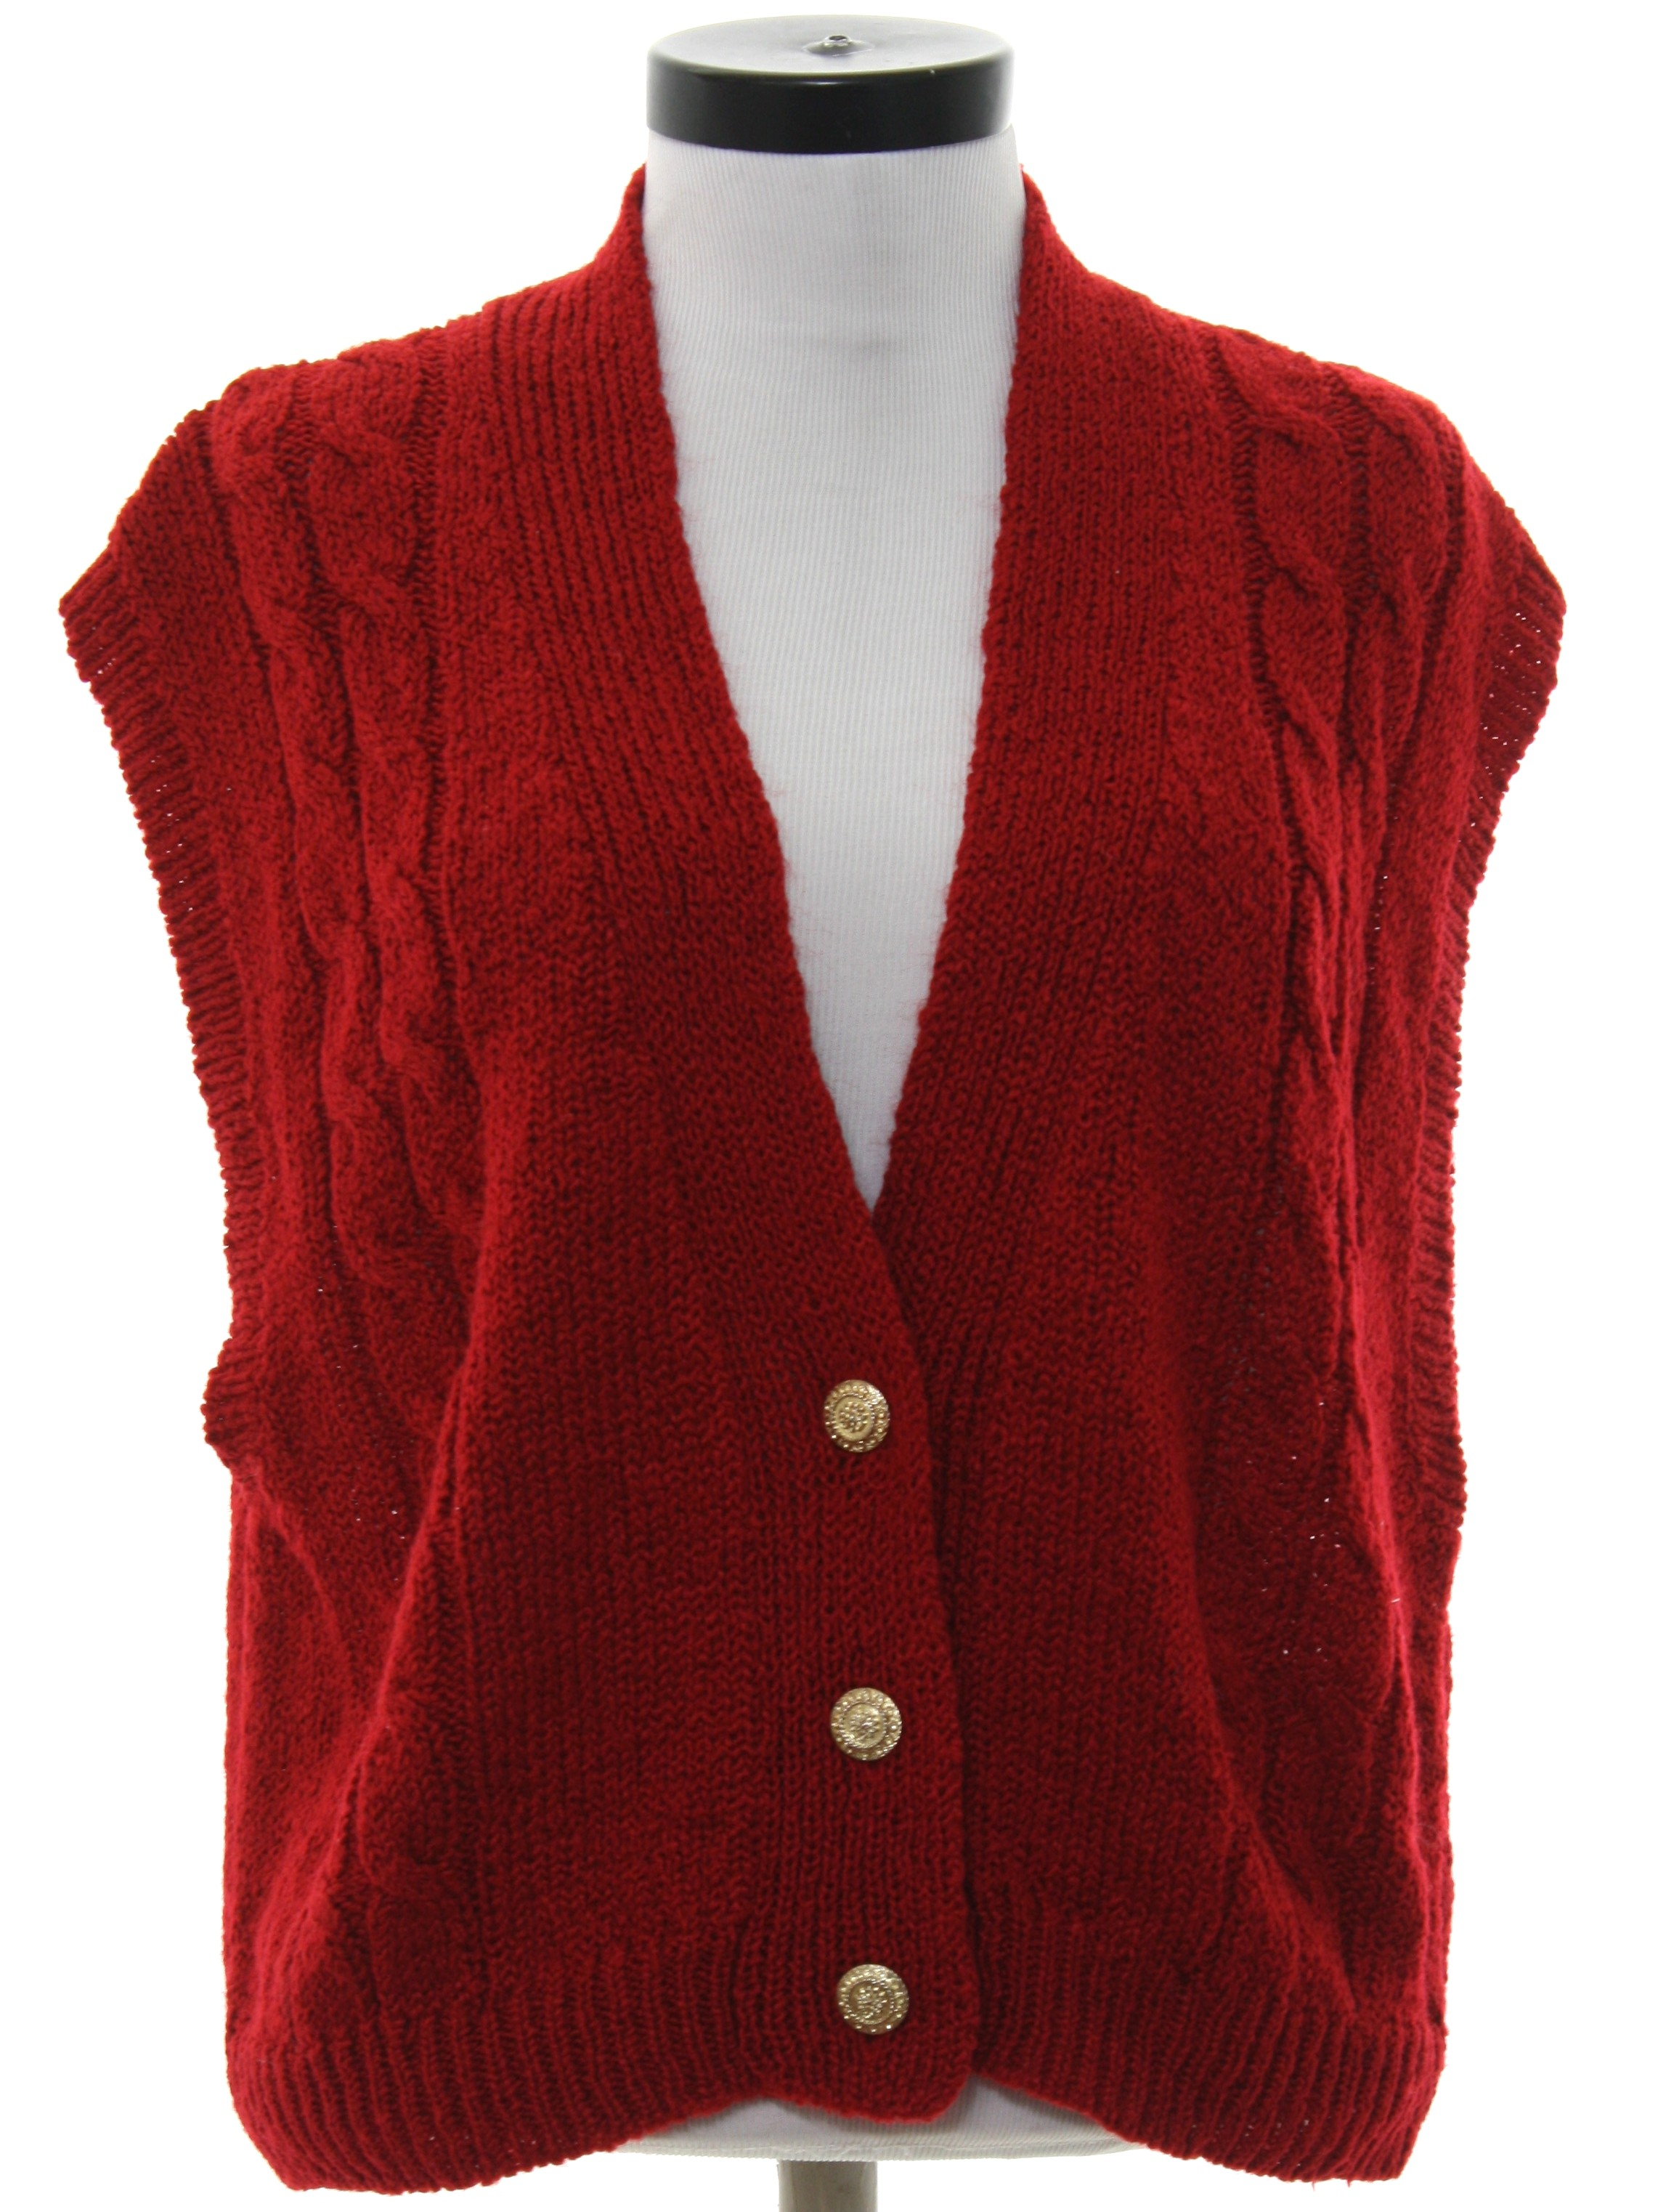 Retro 1980's Sweater (Ashley Hill) : 80s -Ashley Hill- Womens red ...